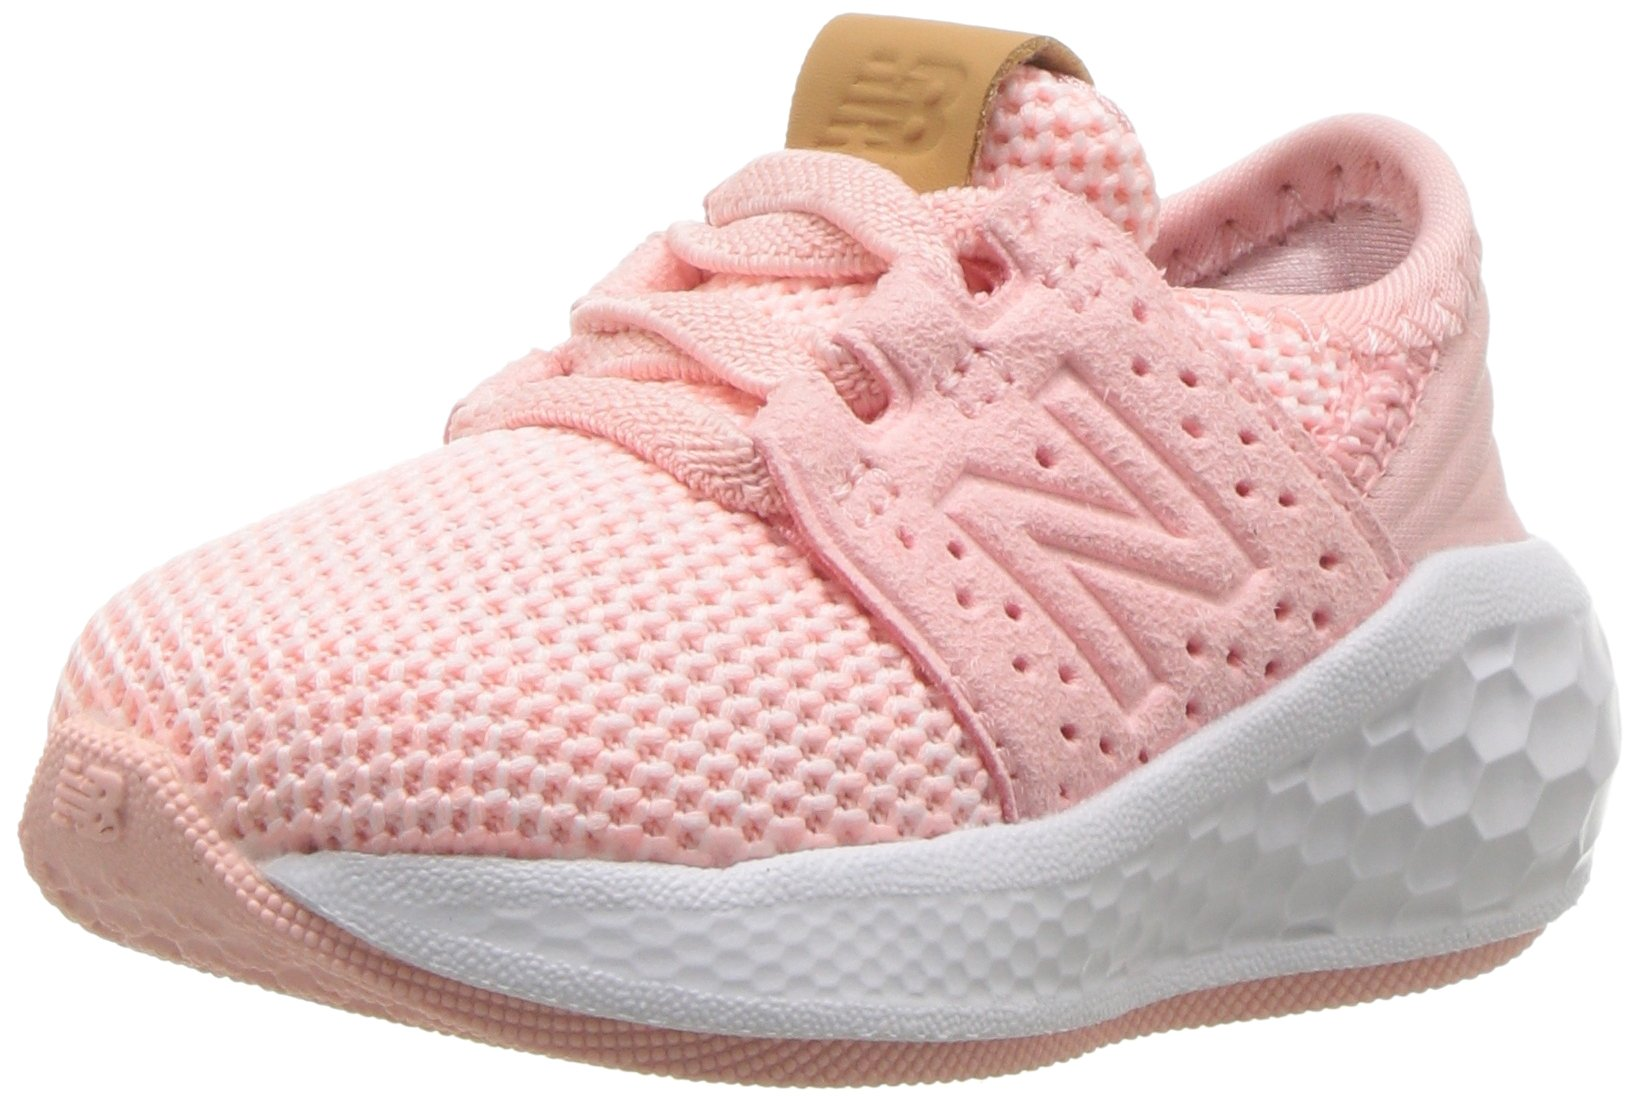 New Balance Girls' Cruz V2 Fresh Foam Running Shoe, Himalayan Pink, 7 M US Toddler